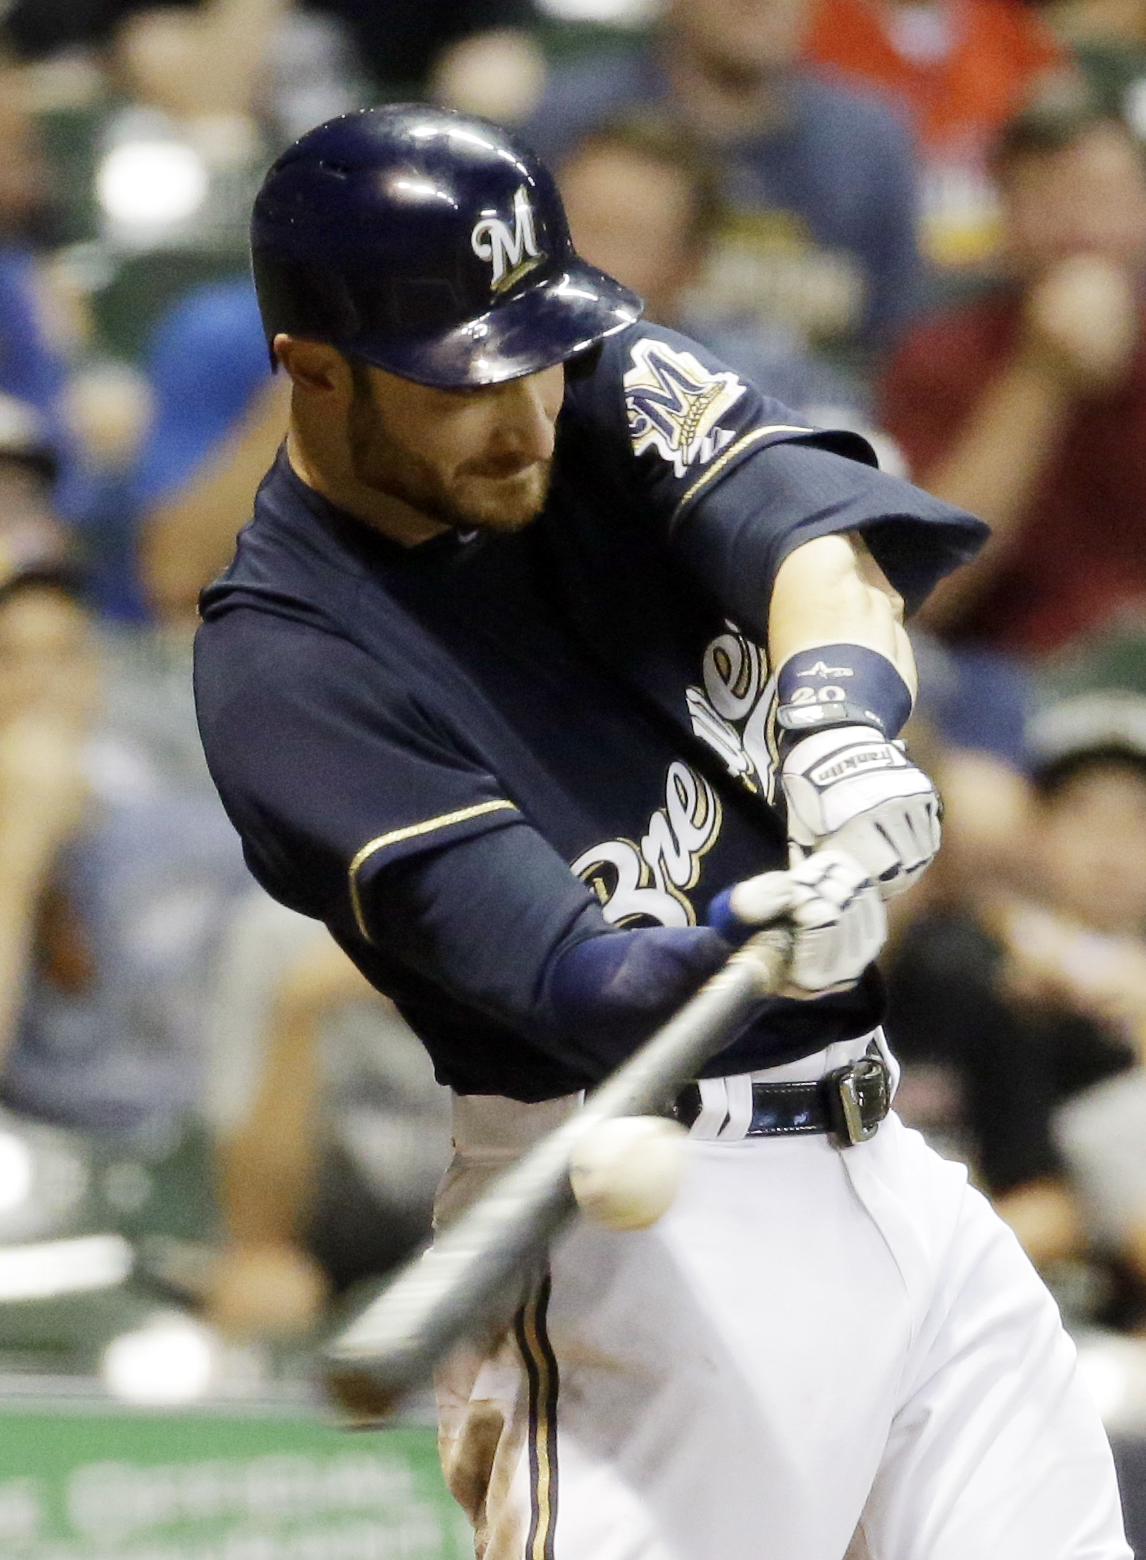 Milwaukee Brewers' Jonathan Lucroy hits a two-run scoring single during the fourth inning of a baseball game against the Pittsburgh Pirates Wednesday, Sept. 2, 2015, in Milwaukee. (AP Photo/Morry Gash)